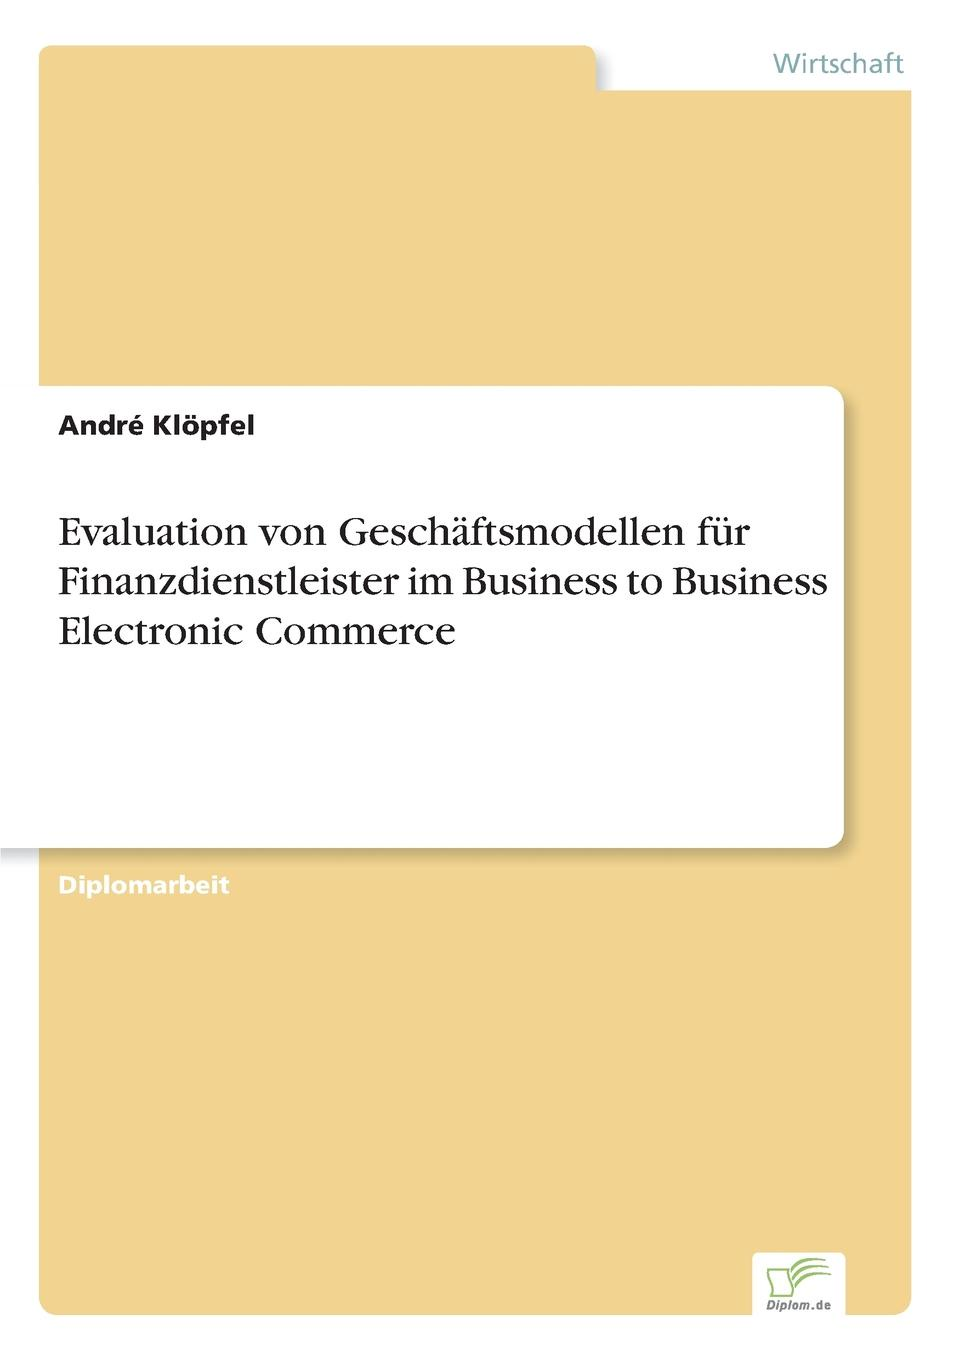 цена André Klöpfel Evaluation von Geschaftsmodellen fur Finanzdienstleister im Business to Business Electronic Commerce онлайн в 2017 году